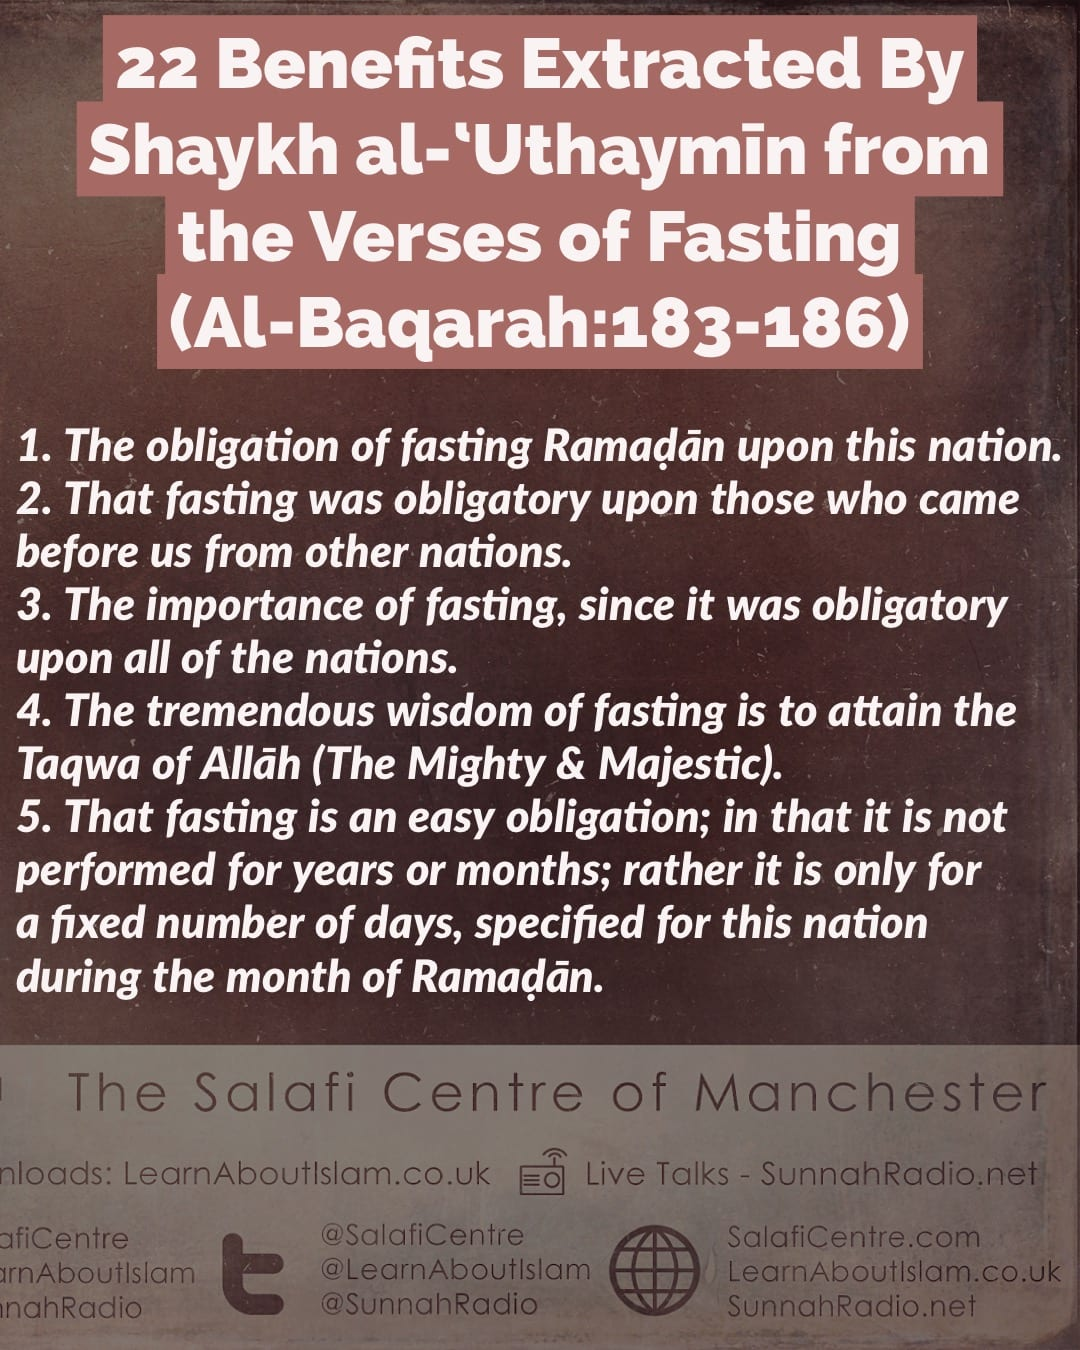 22 Benefits Extracted By Shaykh al-'Uthaymīn from the Verses of Fasting (Al-Baqarah:183-186)